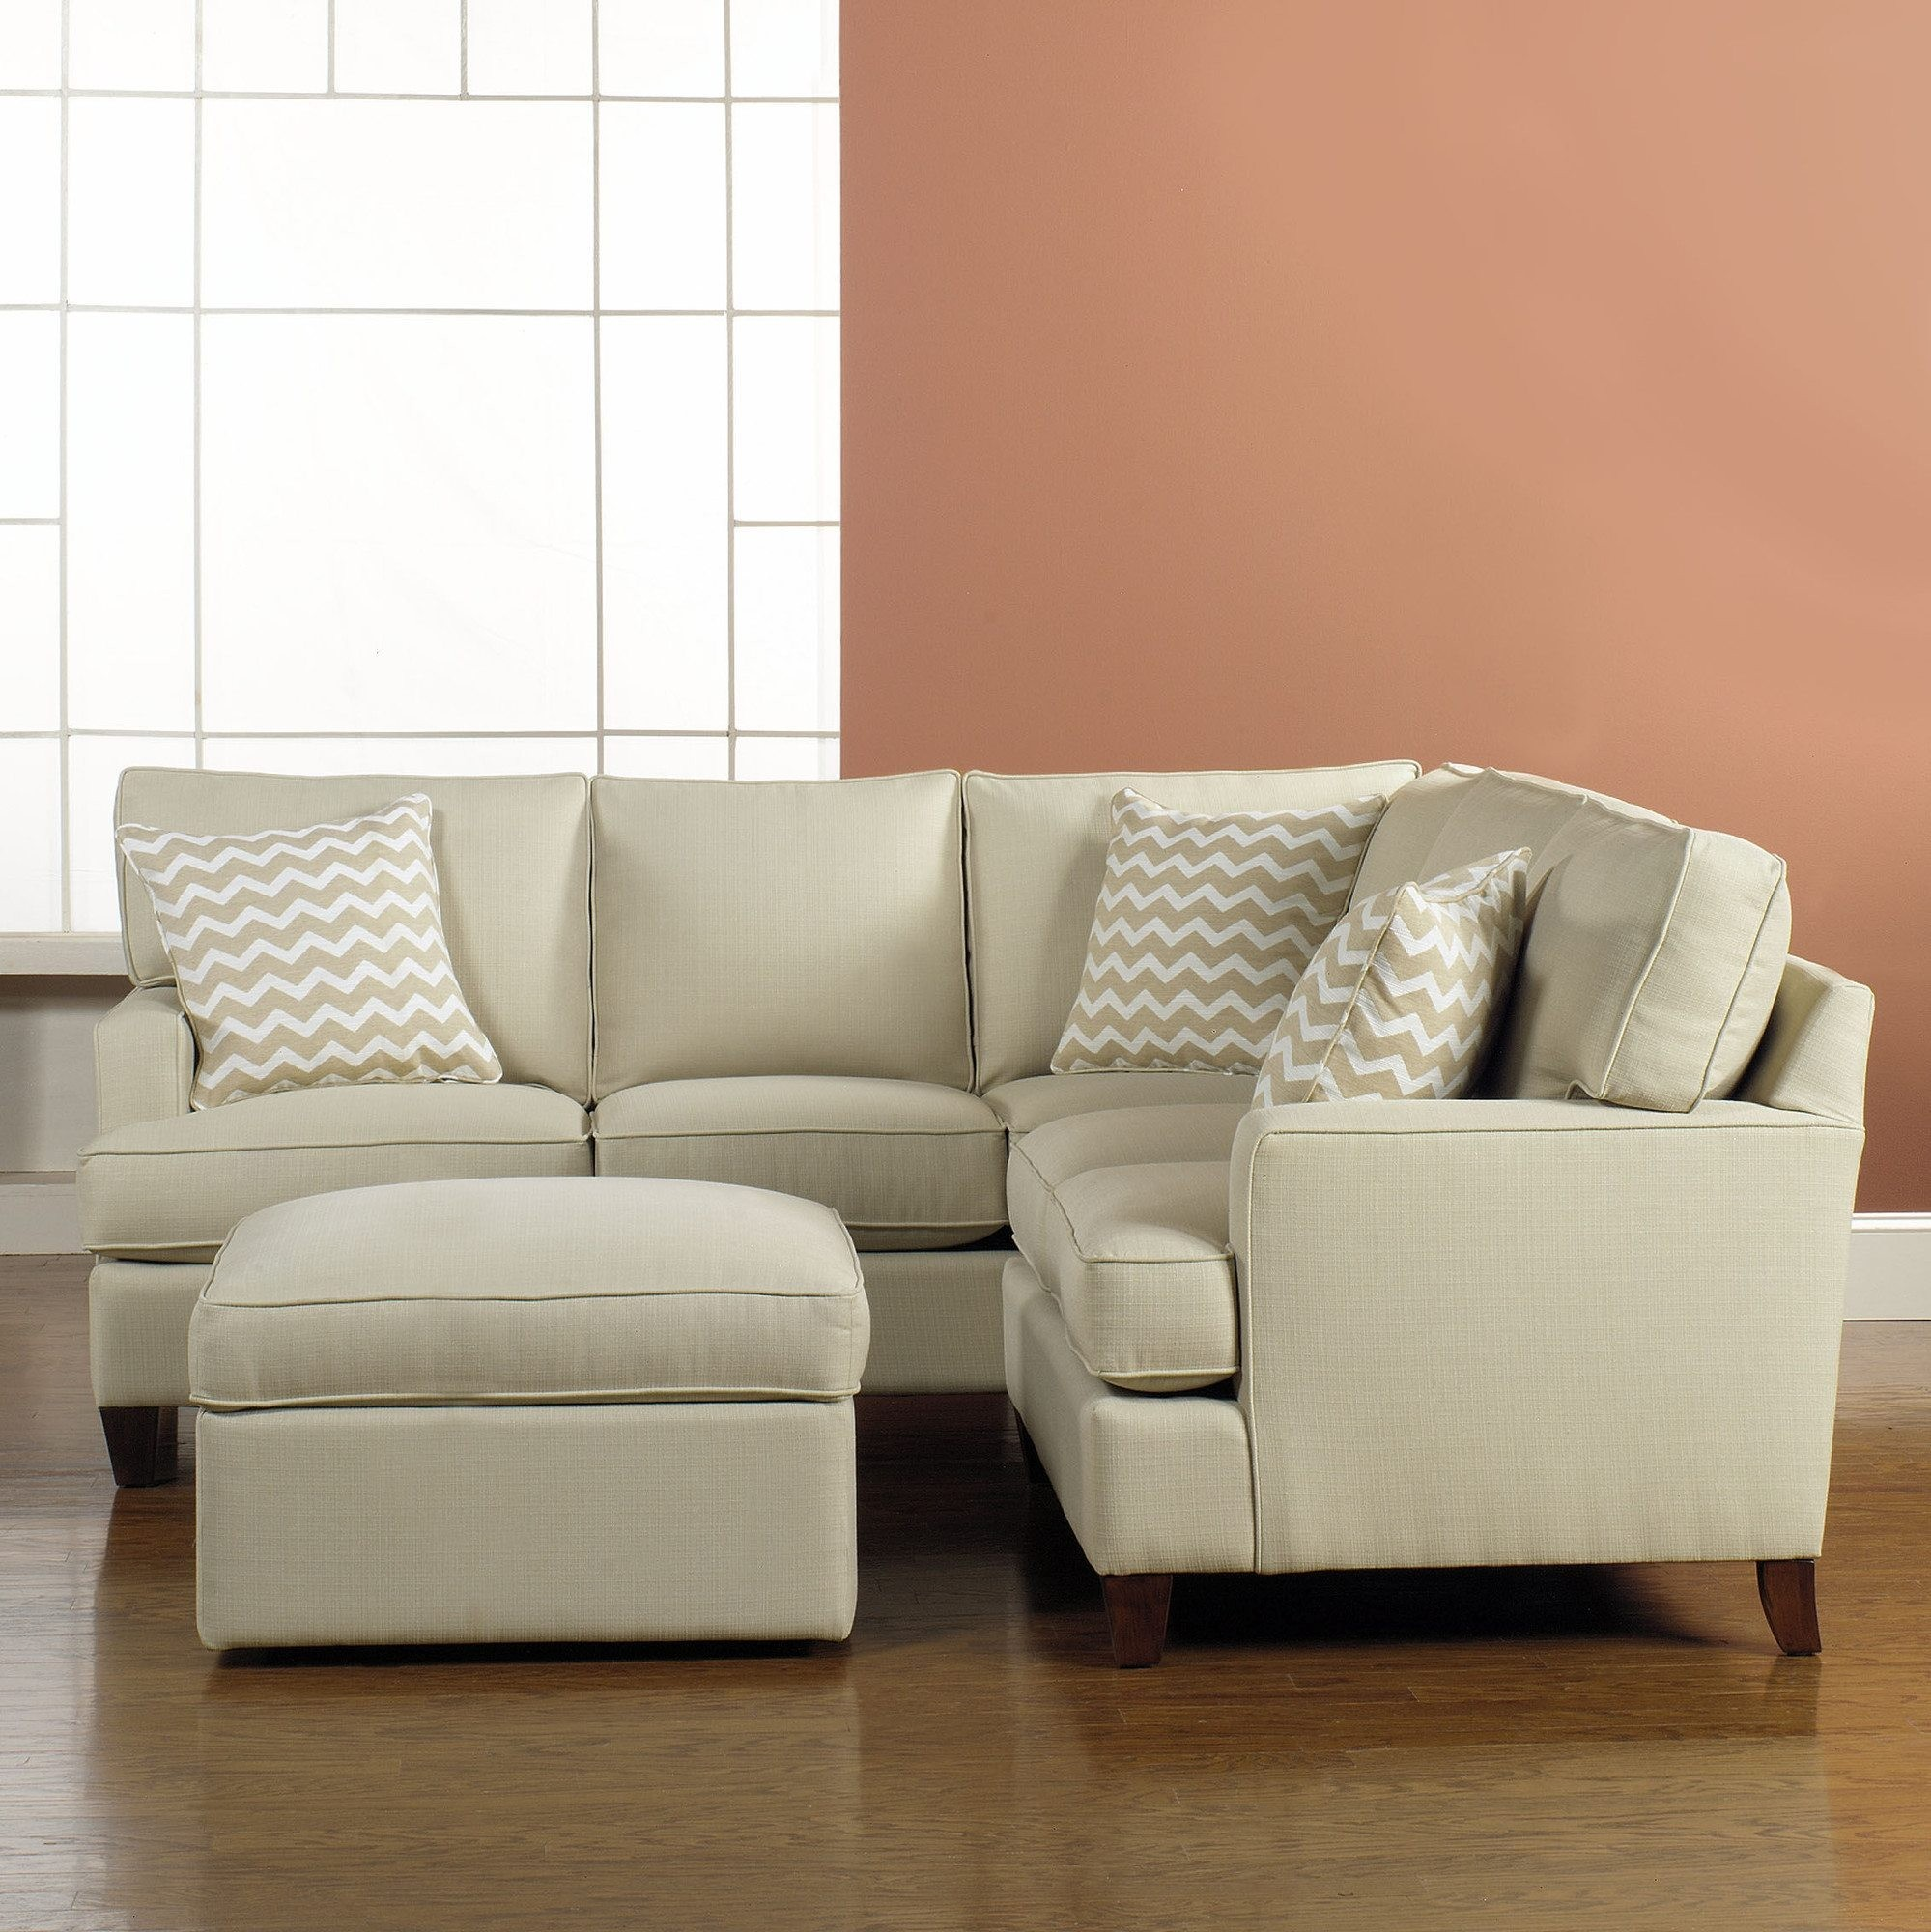 Sectional sofa for Small Spaces Fancy Great Sectional sofa for Small Spaces In Living Room sofa Plan